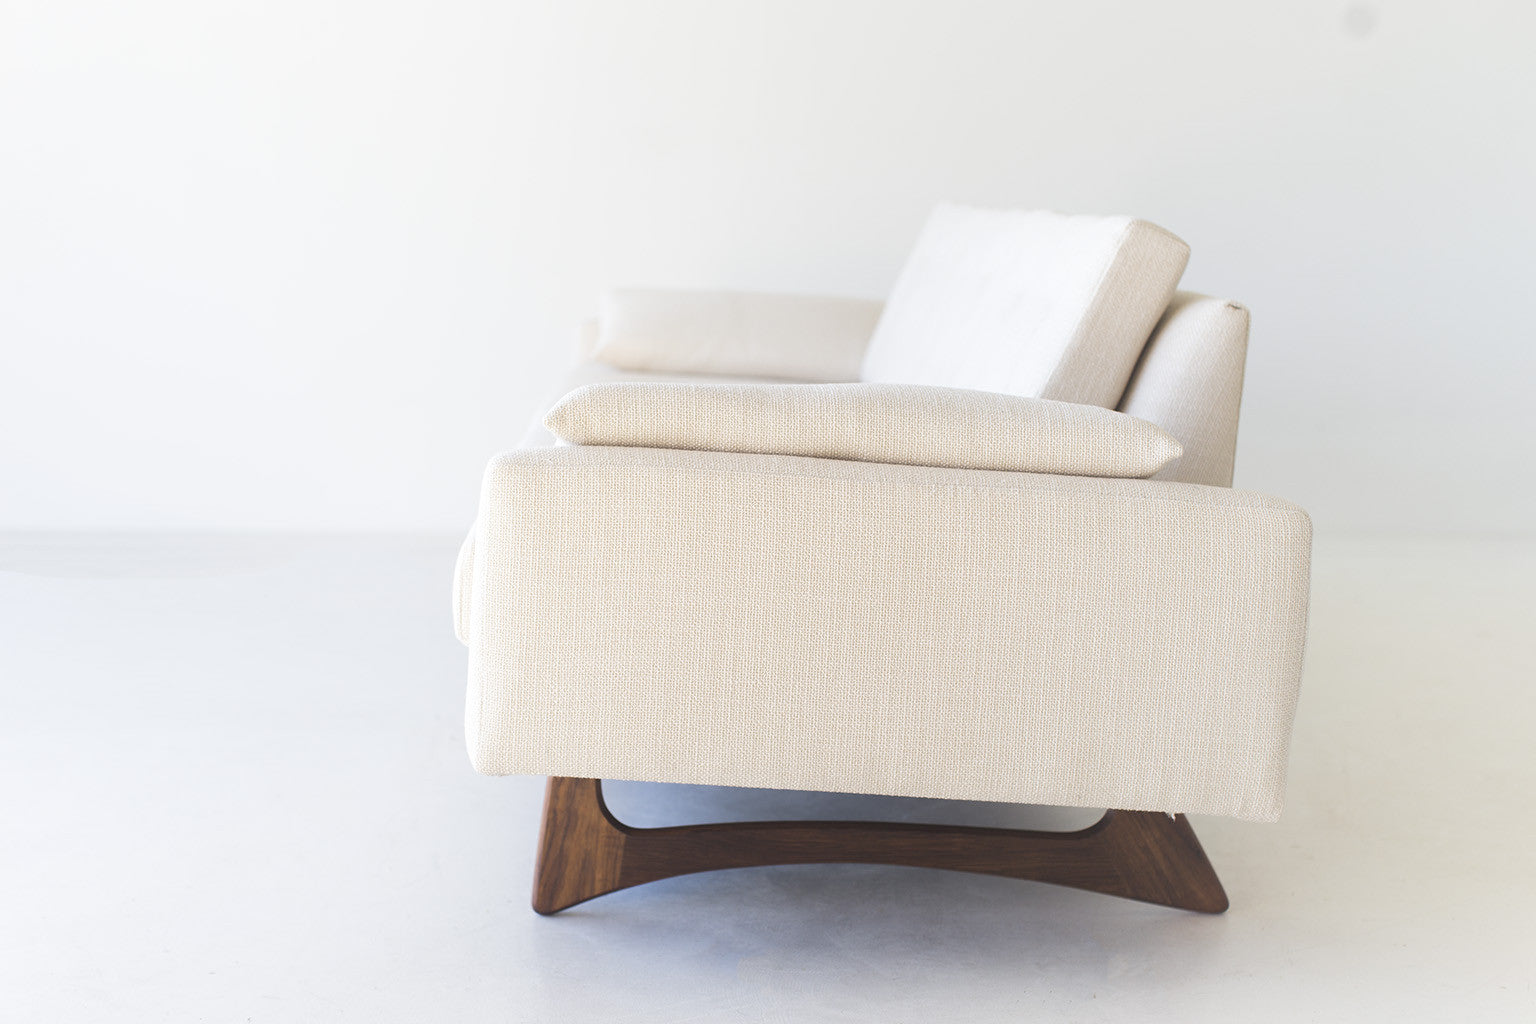 modern-floating-sofa-1401-08